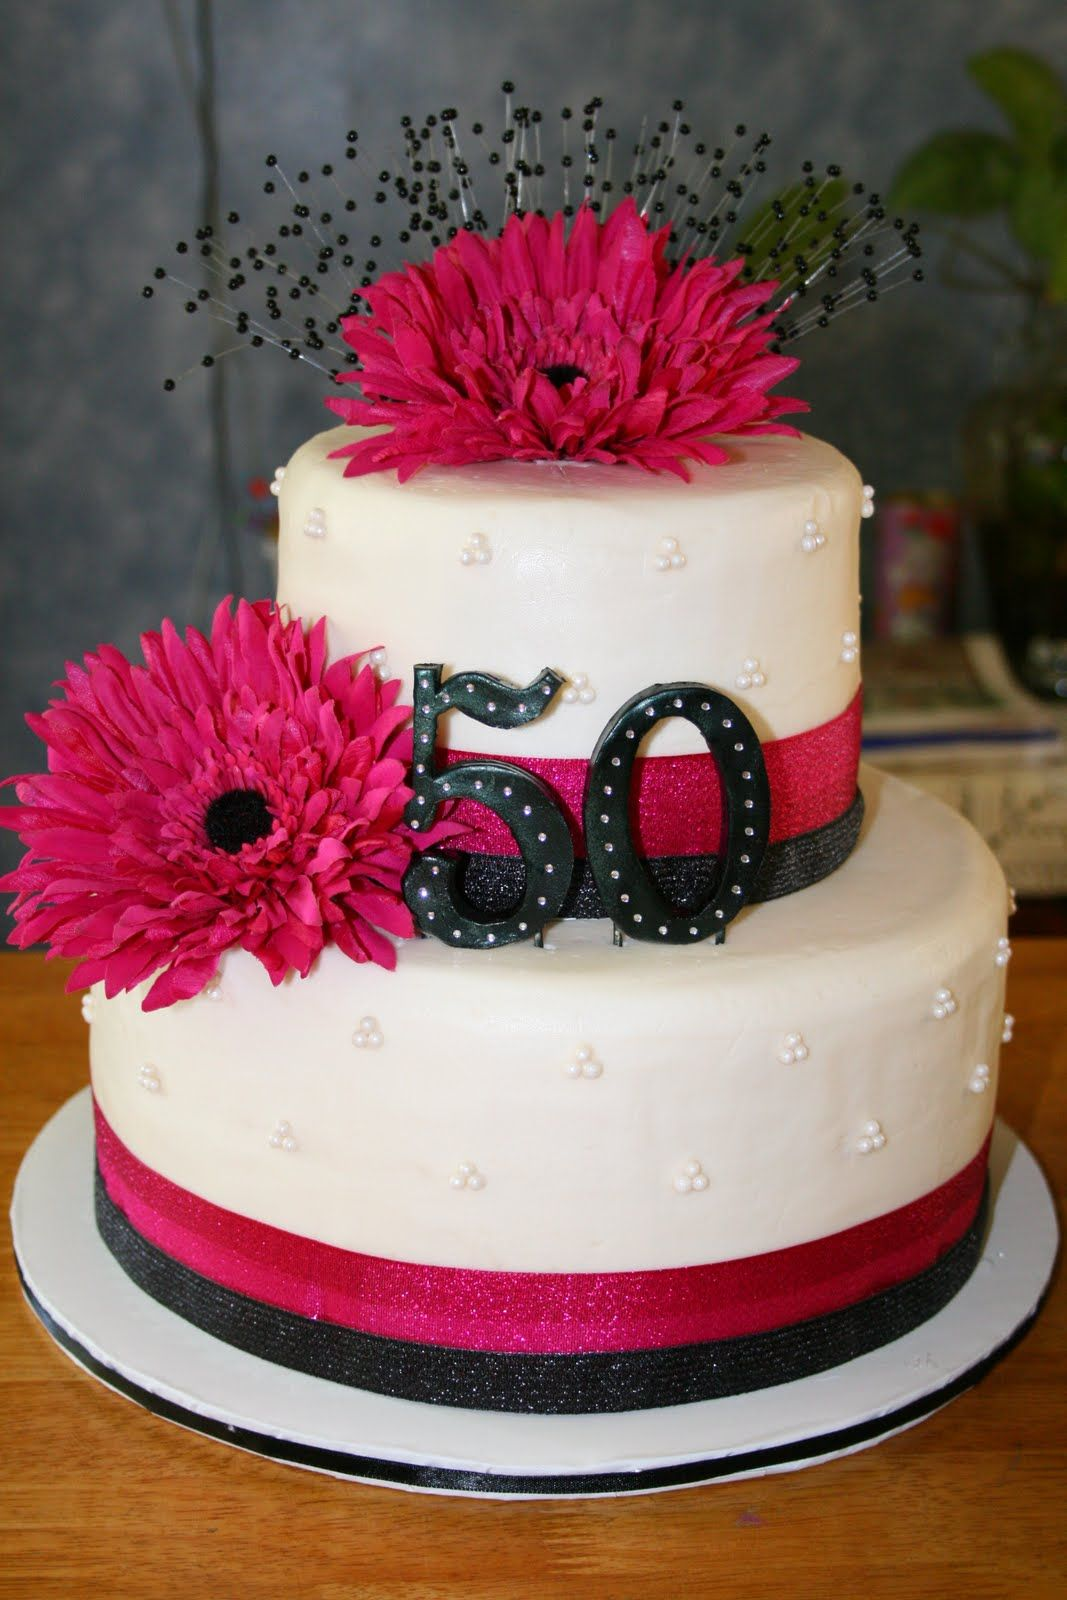 50th birthday cake except I want it in Purple and grey/silver